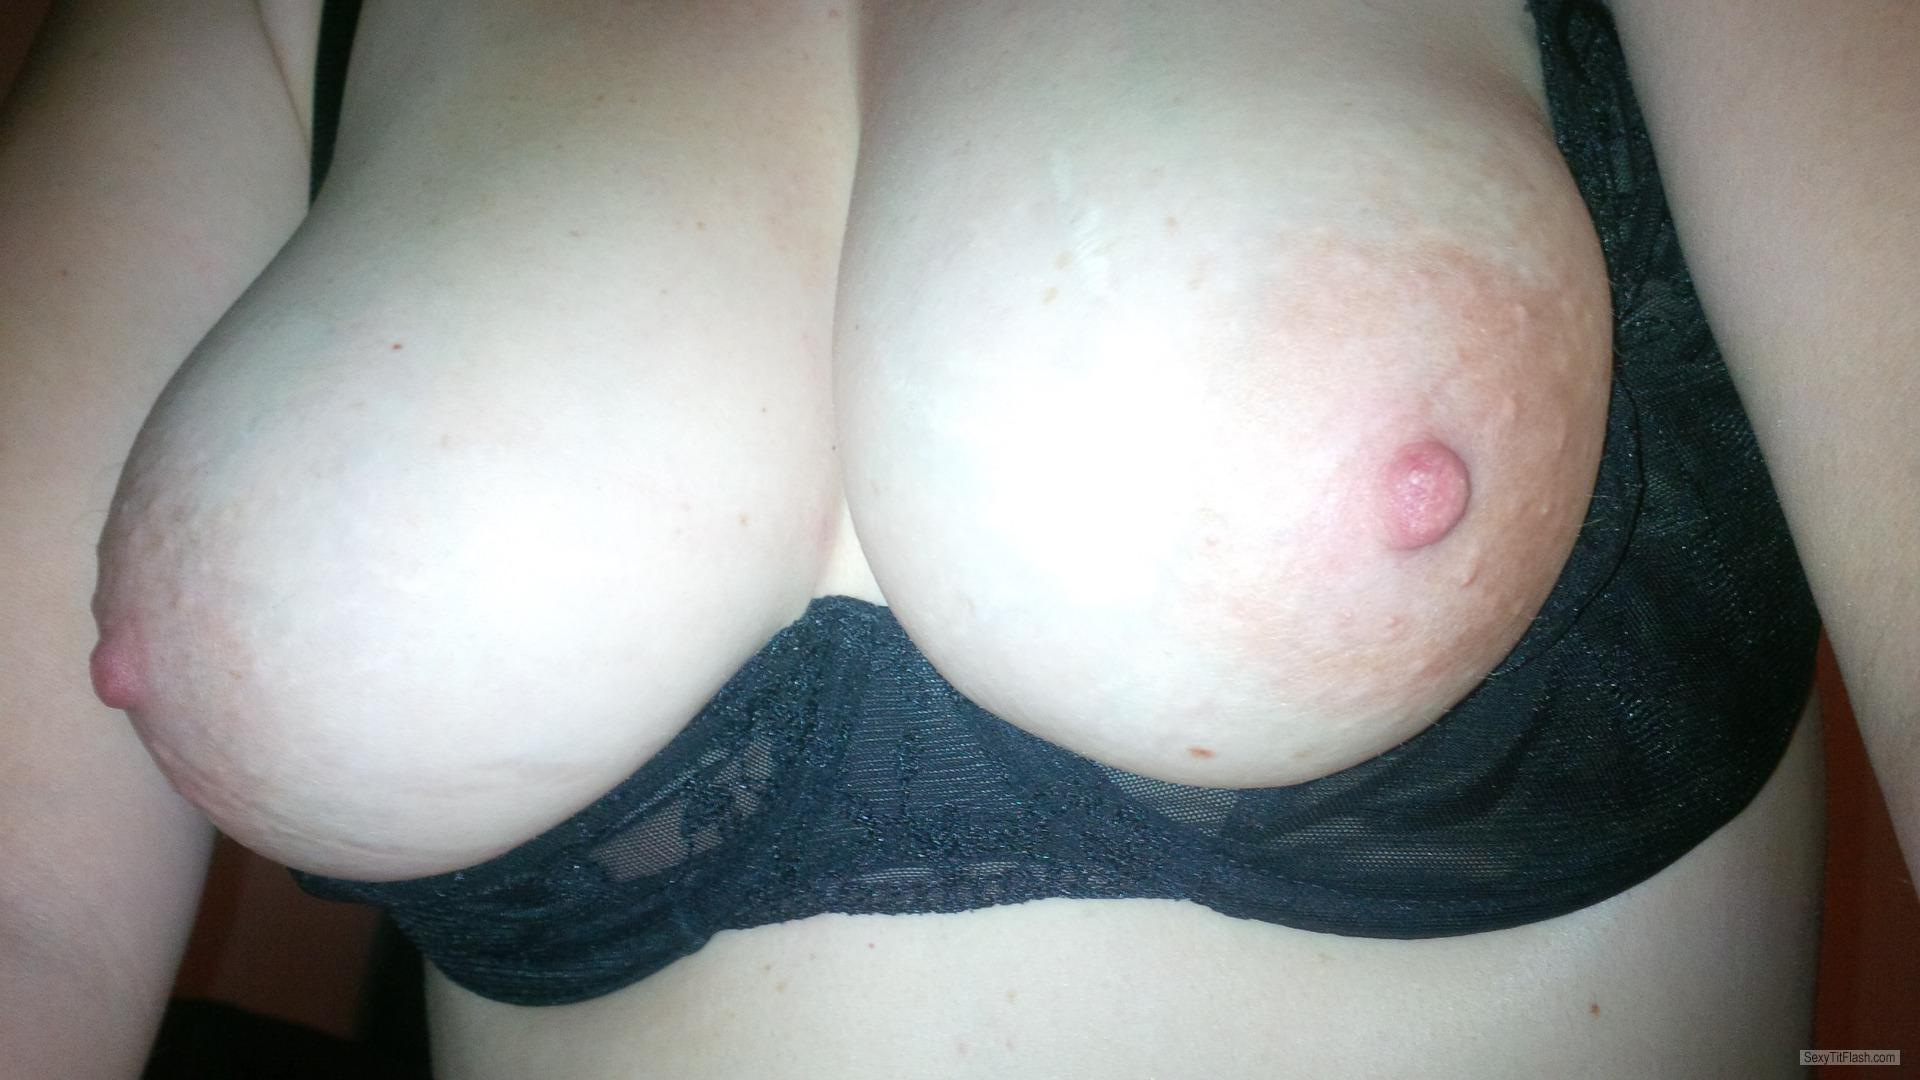 Medium Tits Of My Wife Topless Kjsxxx